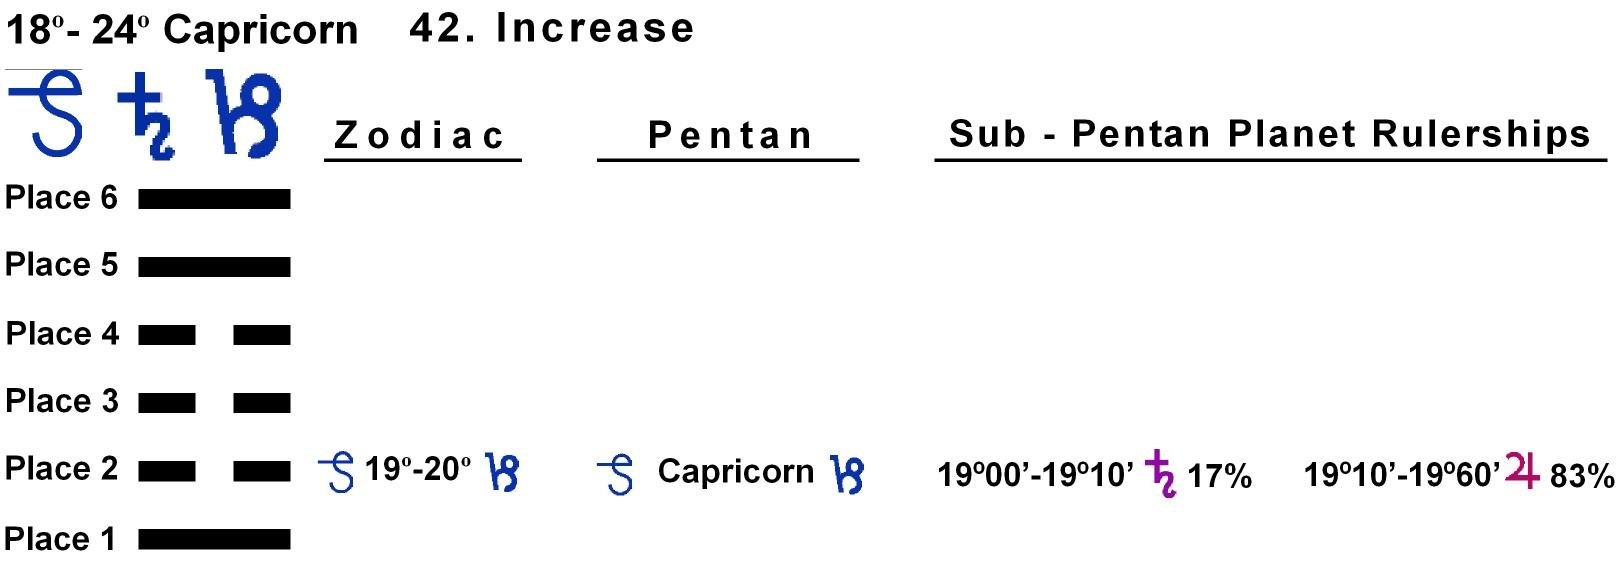 Pent-lines-10CP 19-20 Hx-42 Increase